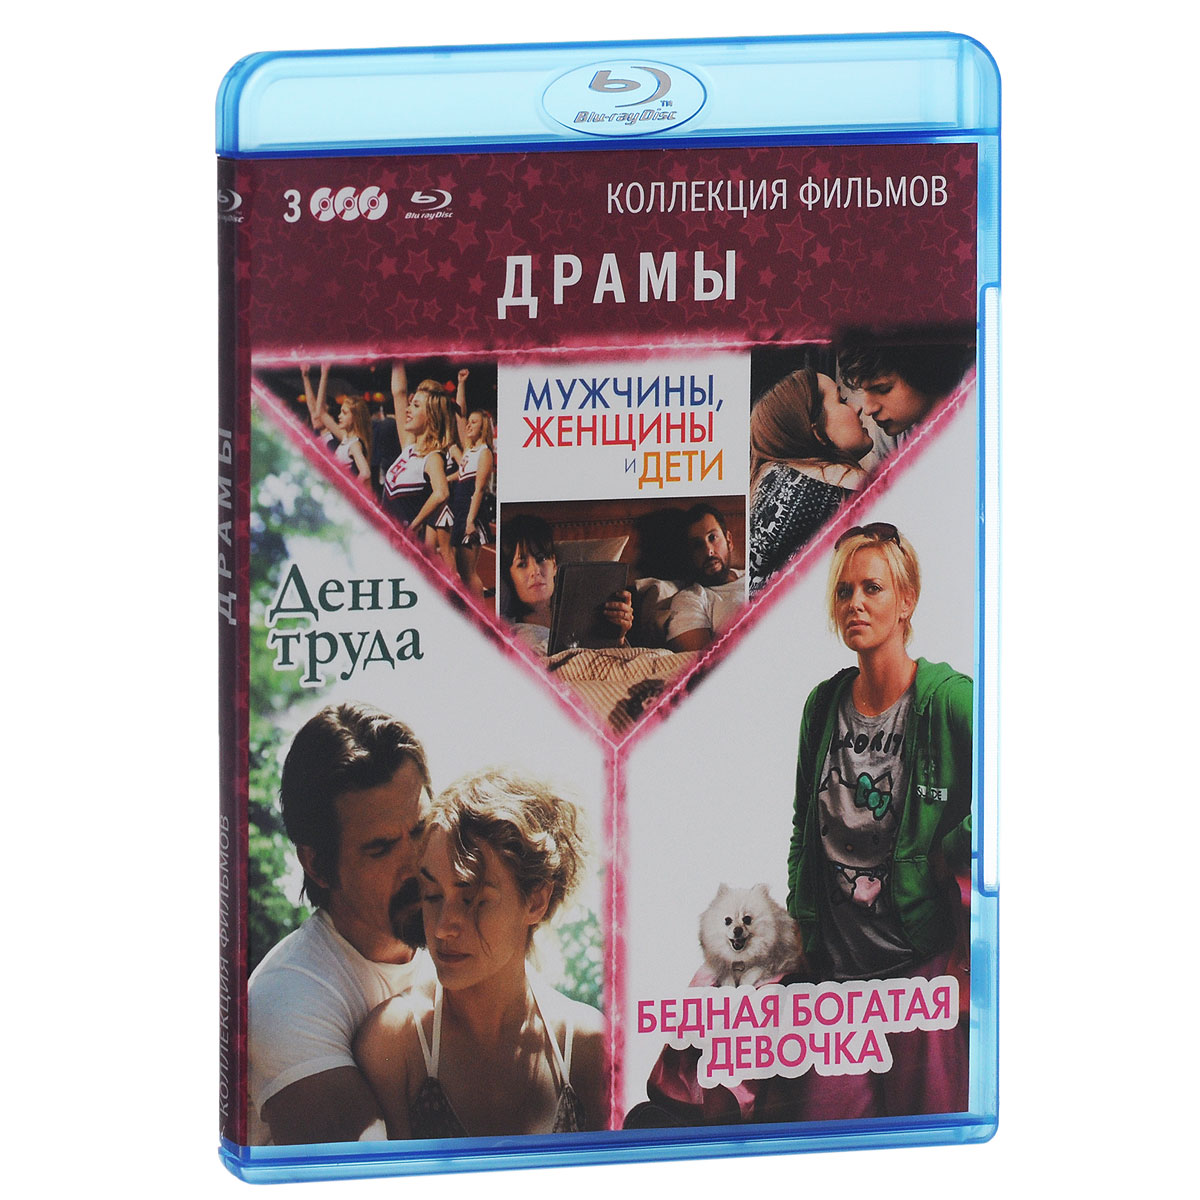 Мужчины, женщины и дети / День труда / Бедная богатая девочка (3 Blu-ray) rc electric toy car 1 24 l333 high speed off road buggy radio remote control rtr rock rover rc toy model child best gift toy